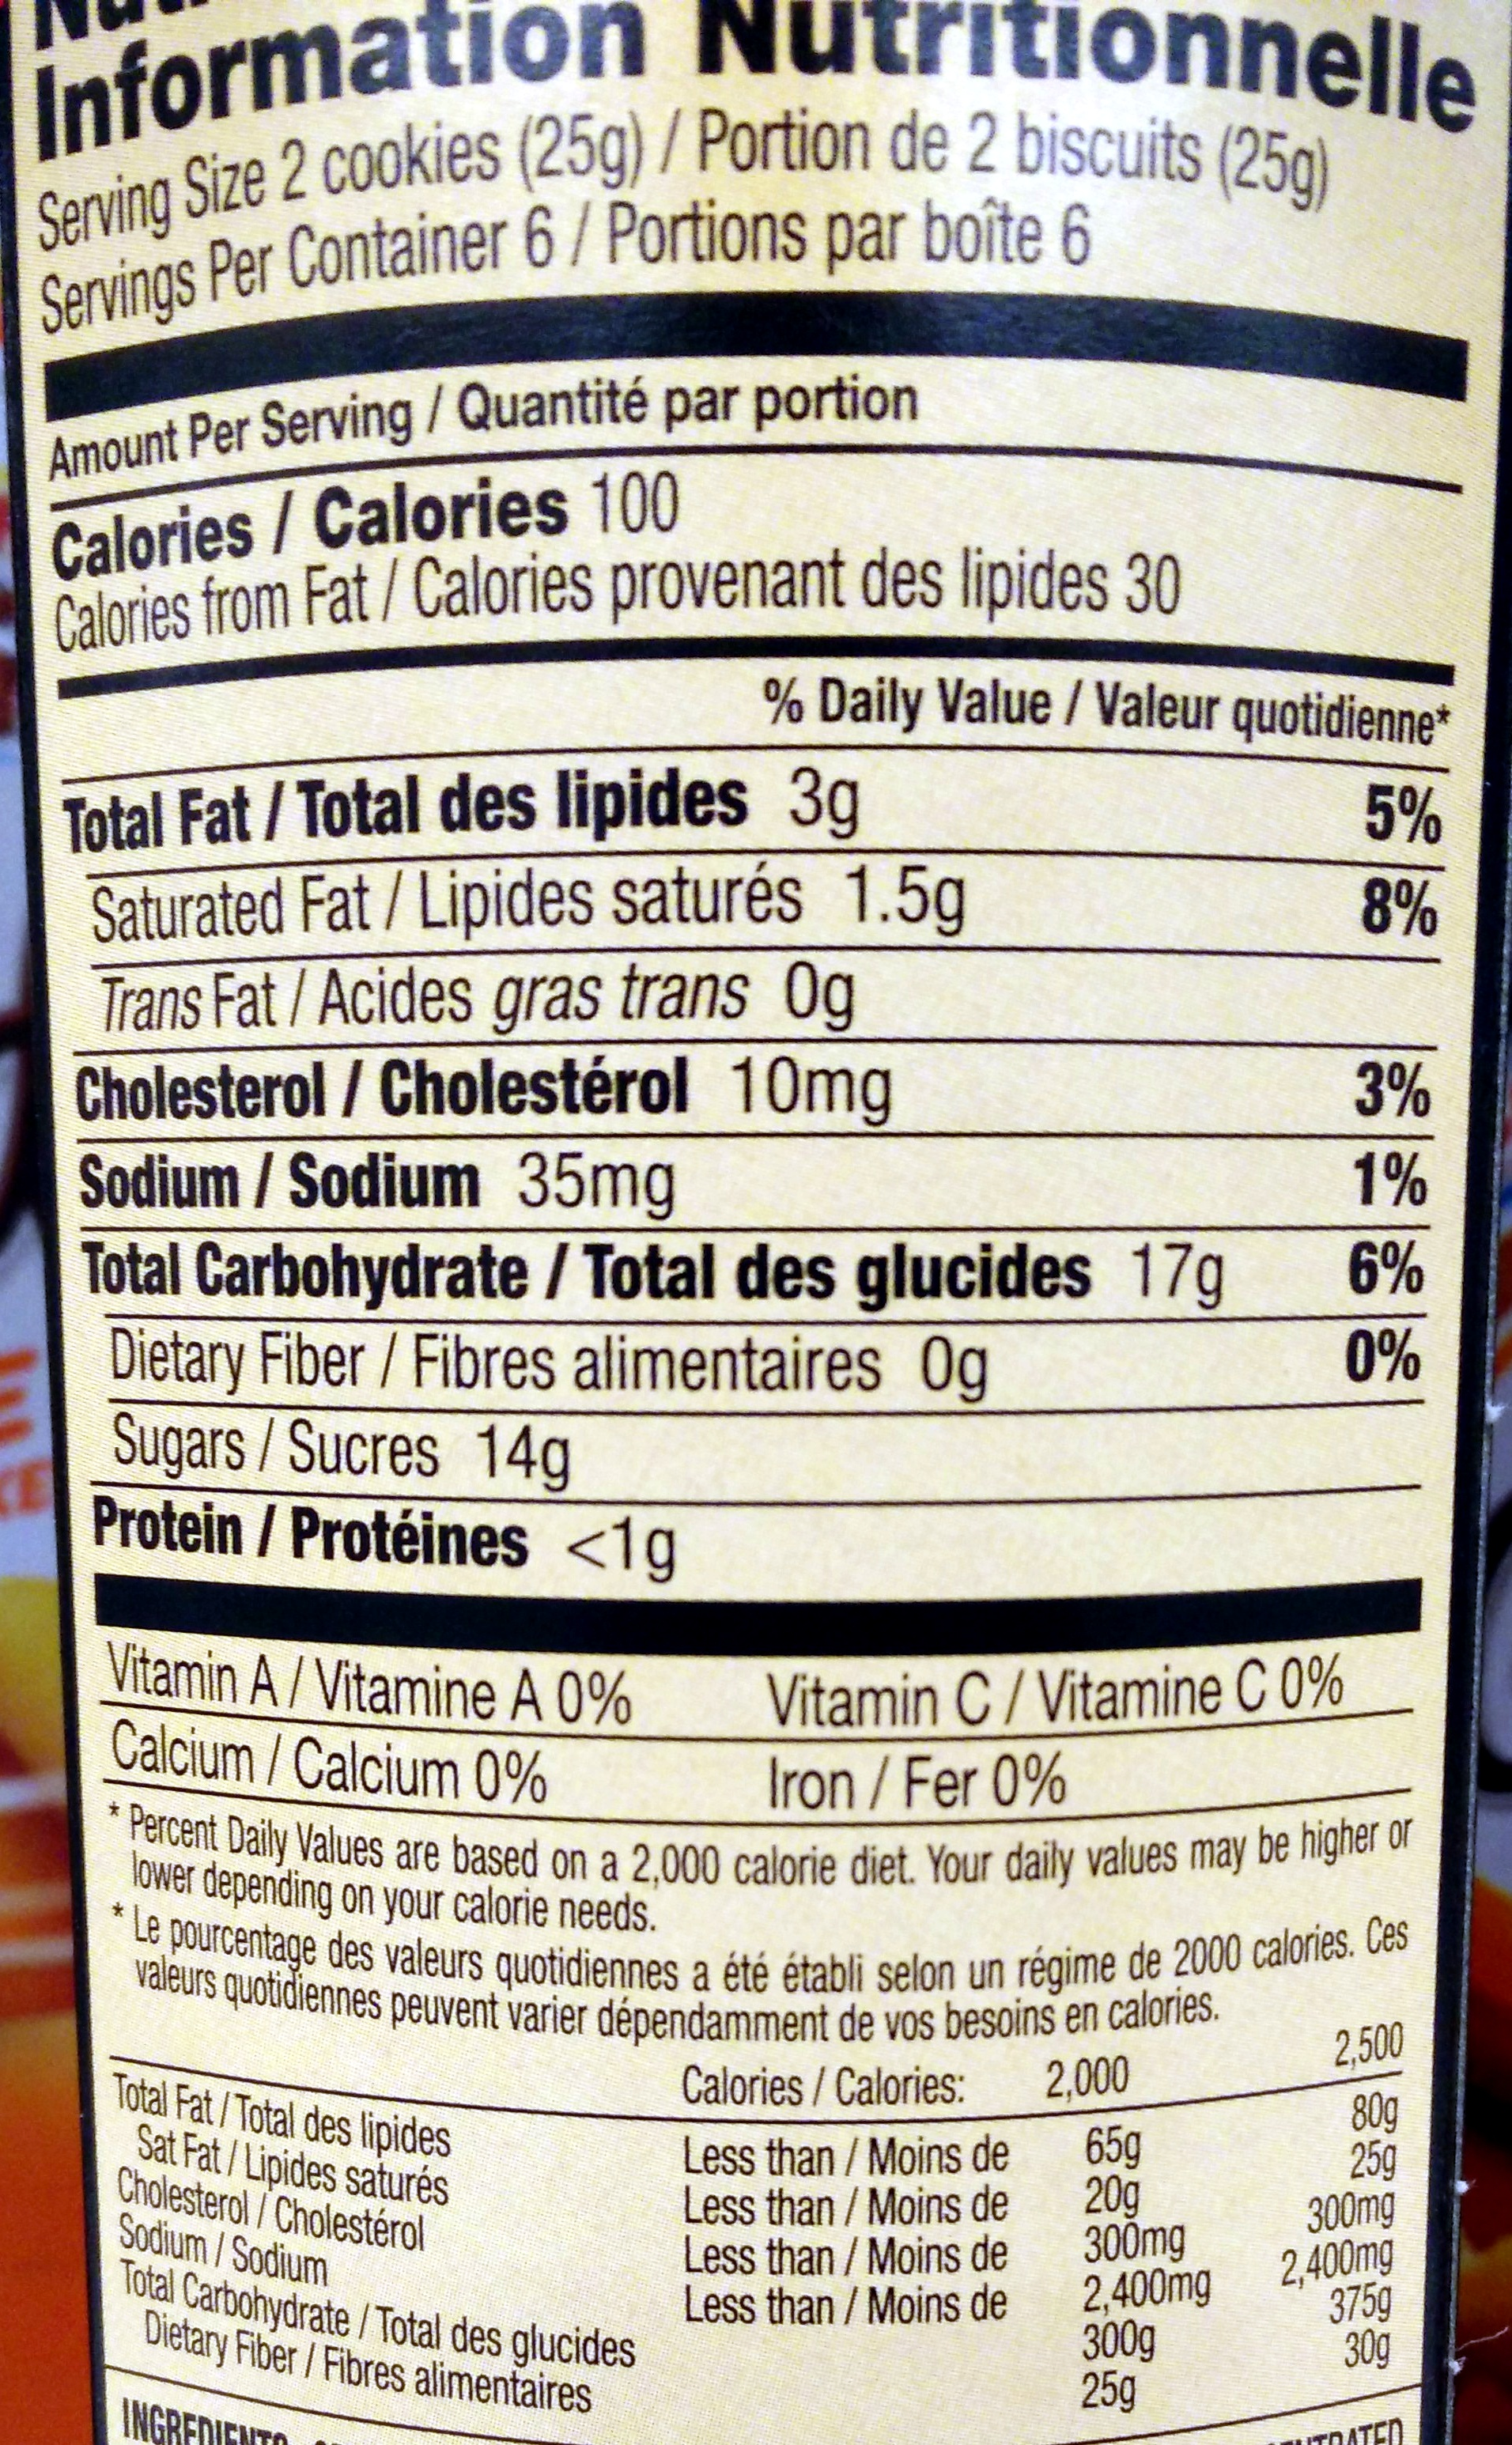 Lu pim's cookies orange 1x5.290 oz - Nutrition facts - en